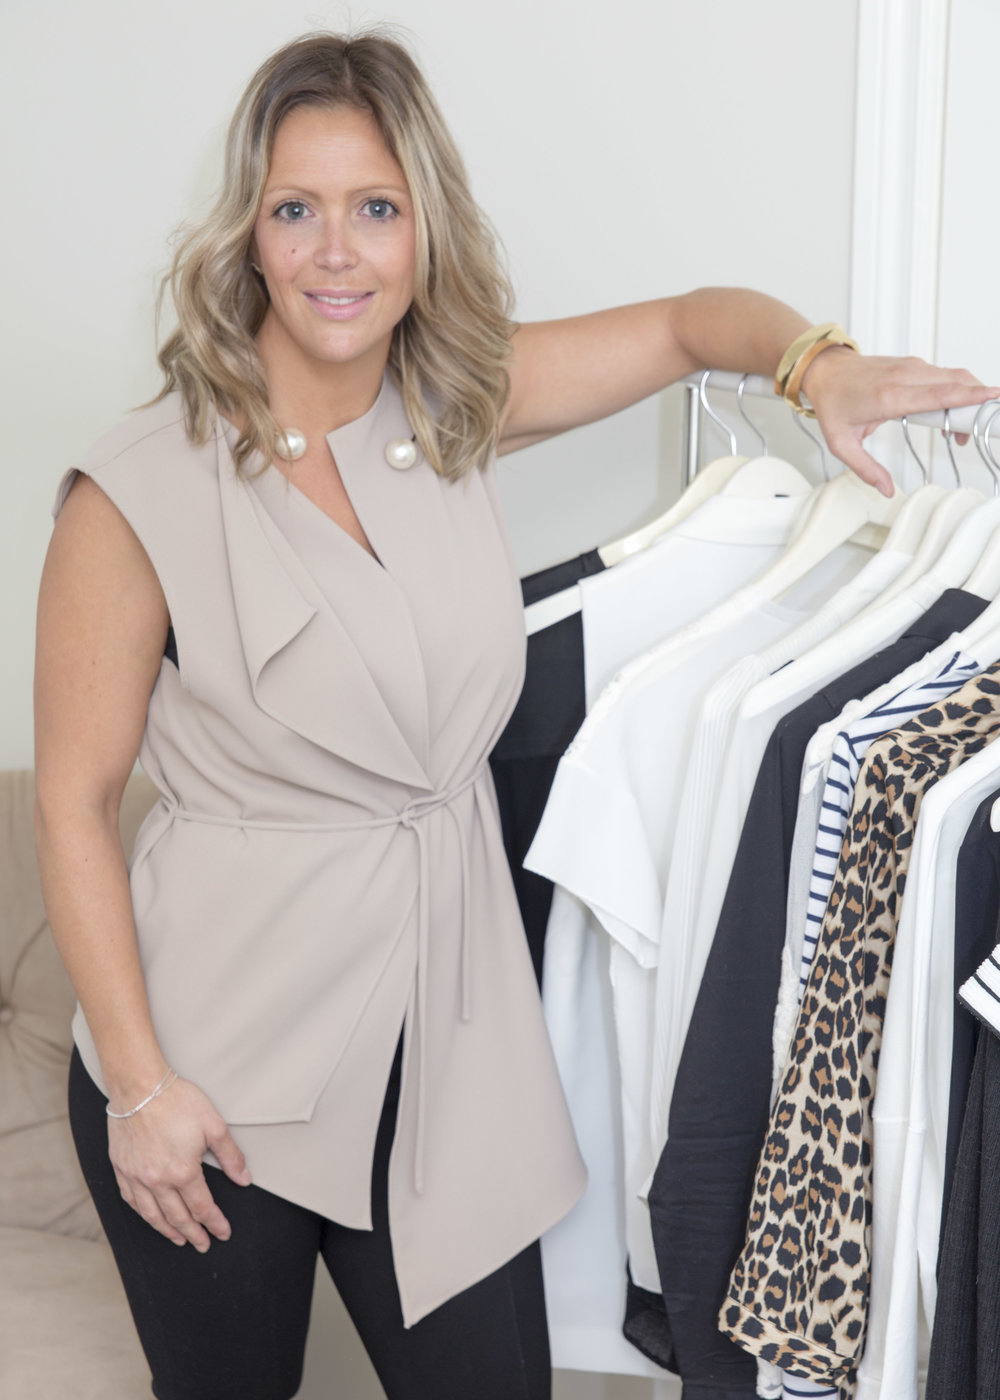 personal fashion stylist sharon warten